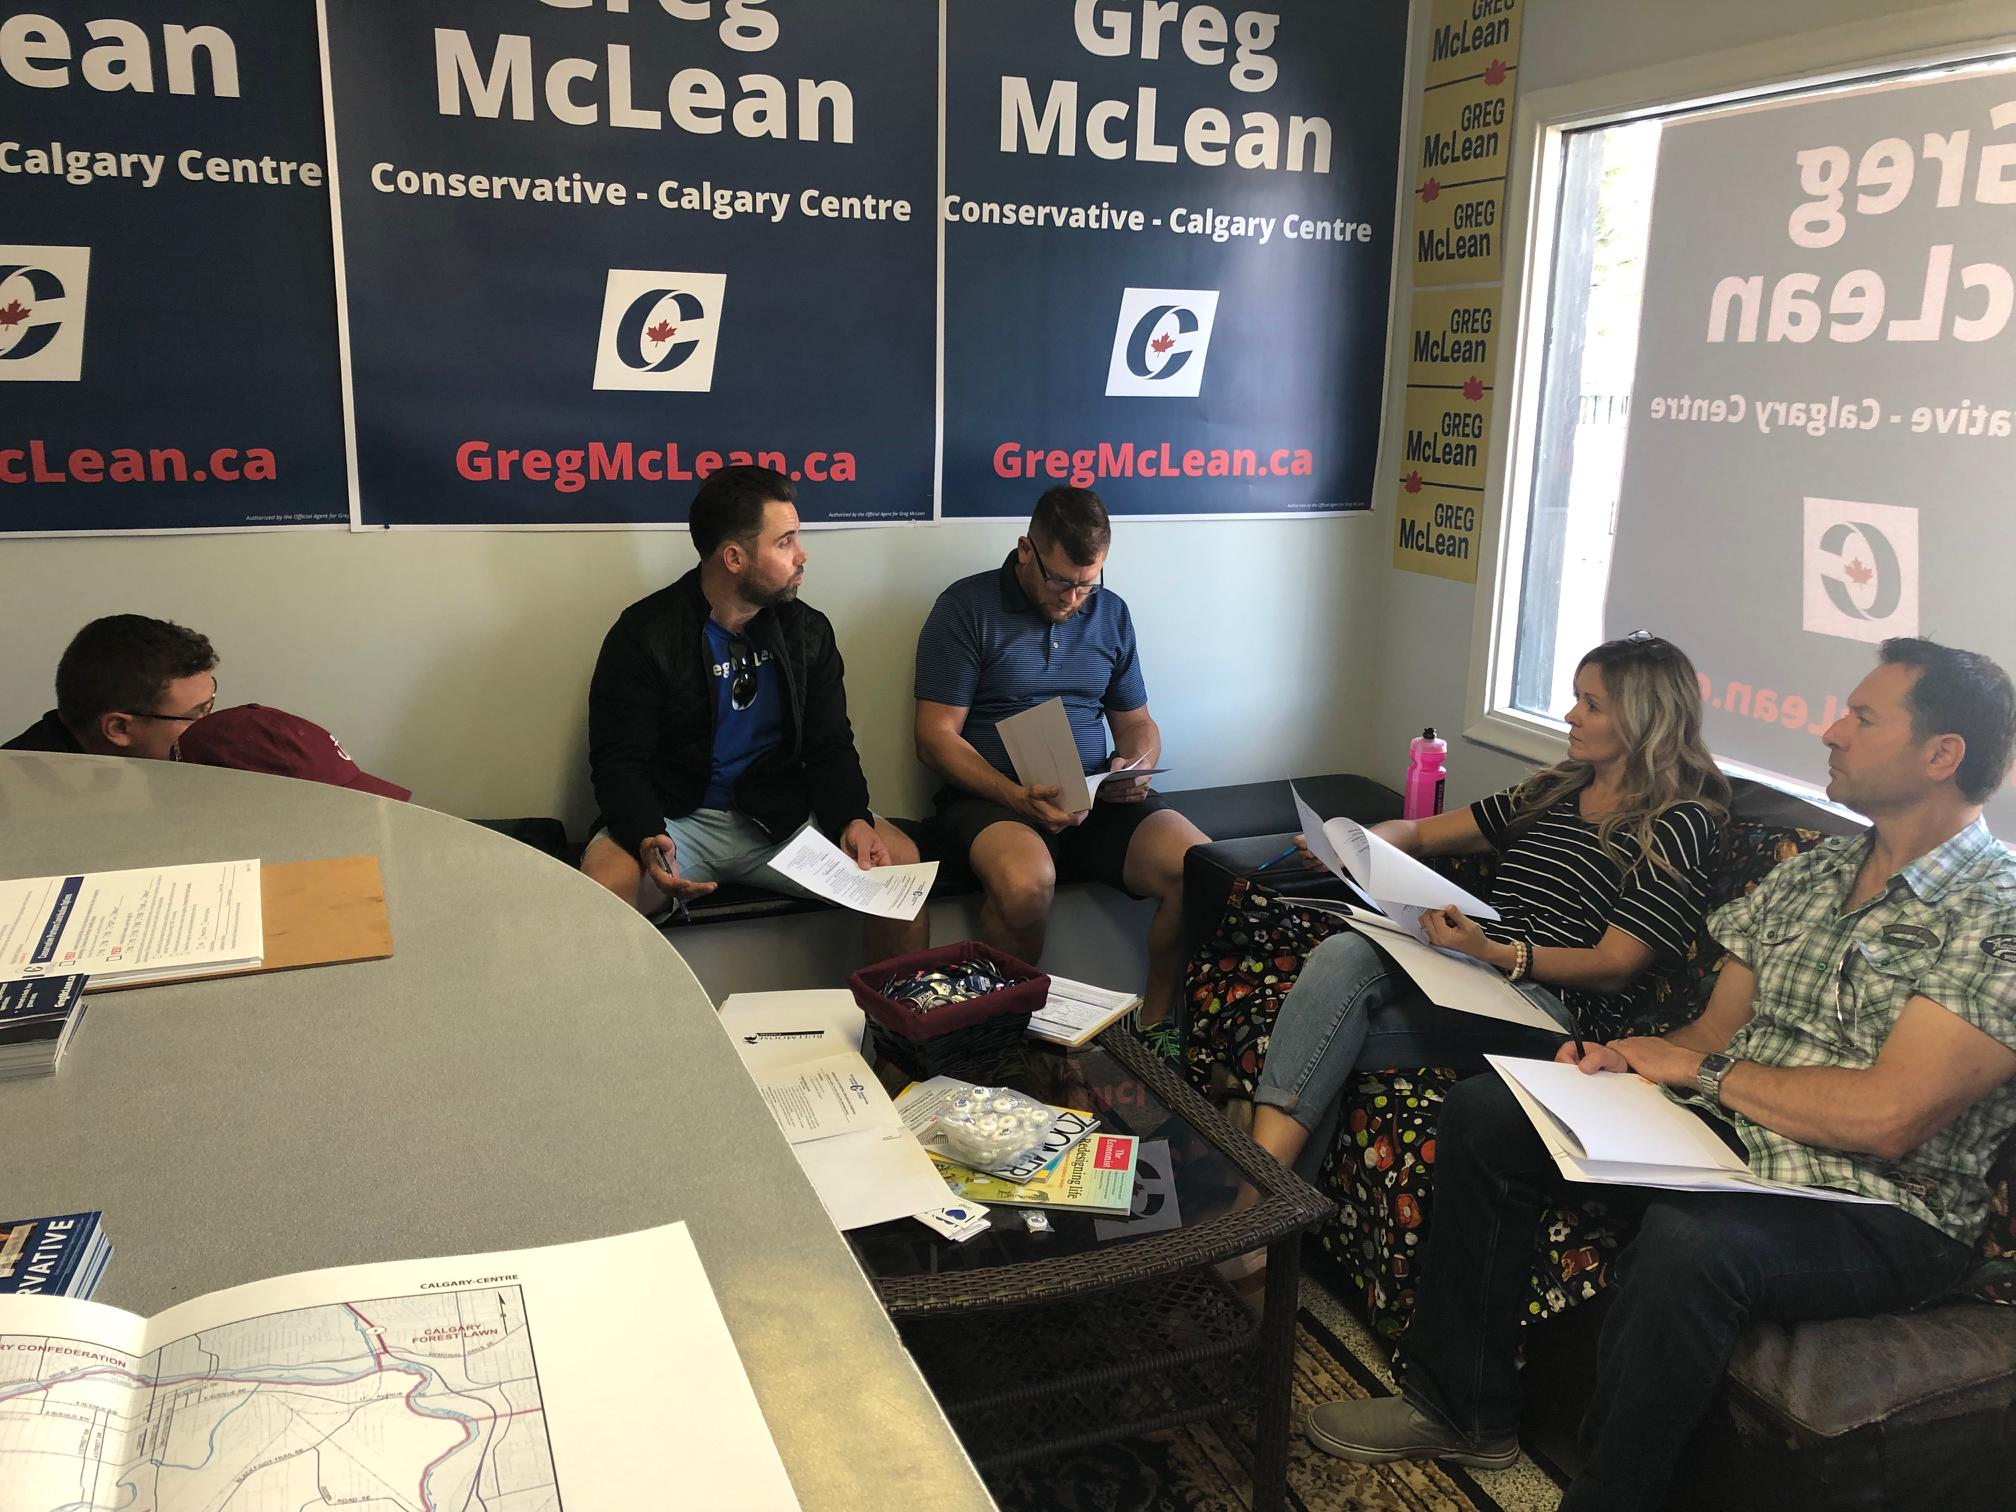 We're using the space for meetings (this is the Sign Committee meeting on Saturday afternoon) but our hours are still on as-needed basis, so if you plan to stop by, please call ahead at 403.453.2454. We'll be staffed regularly after Labour Day.